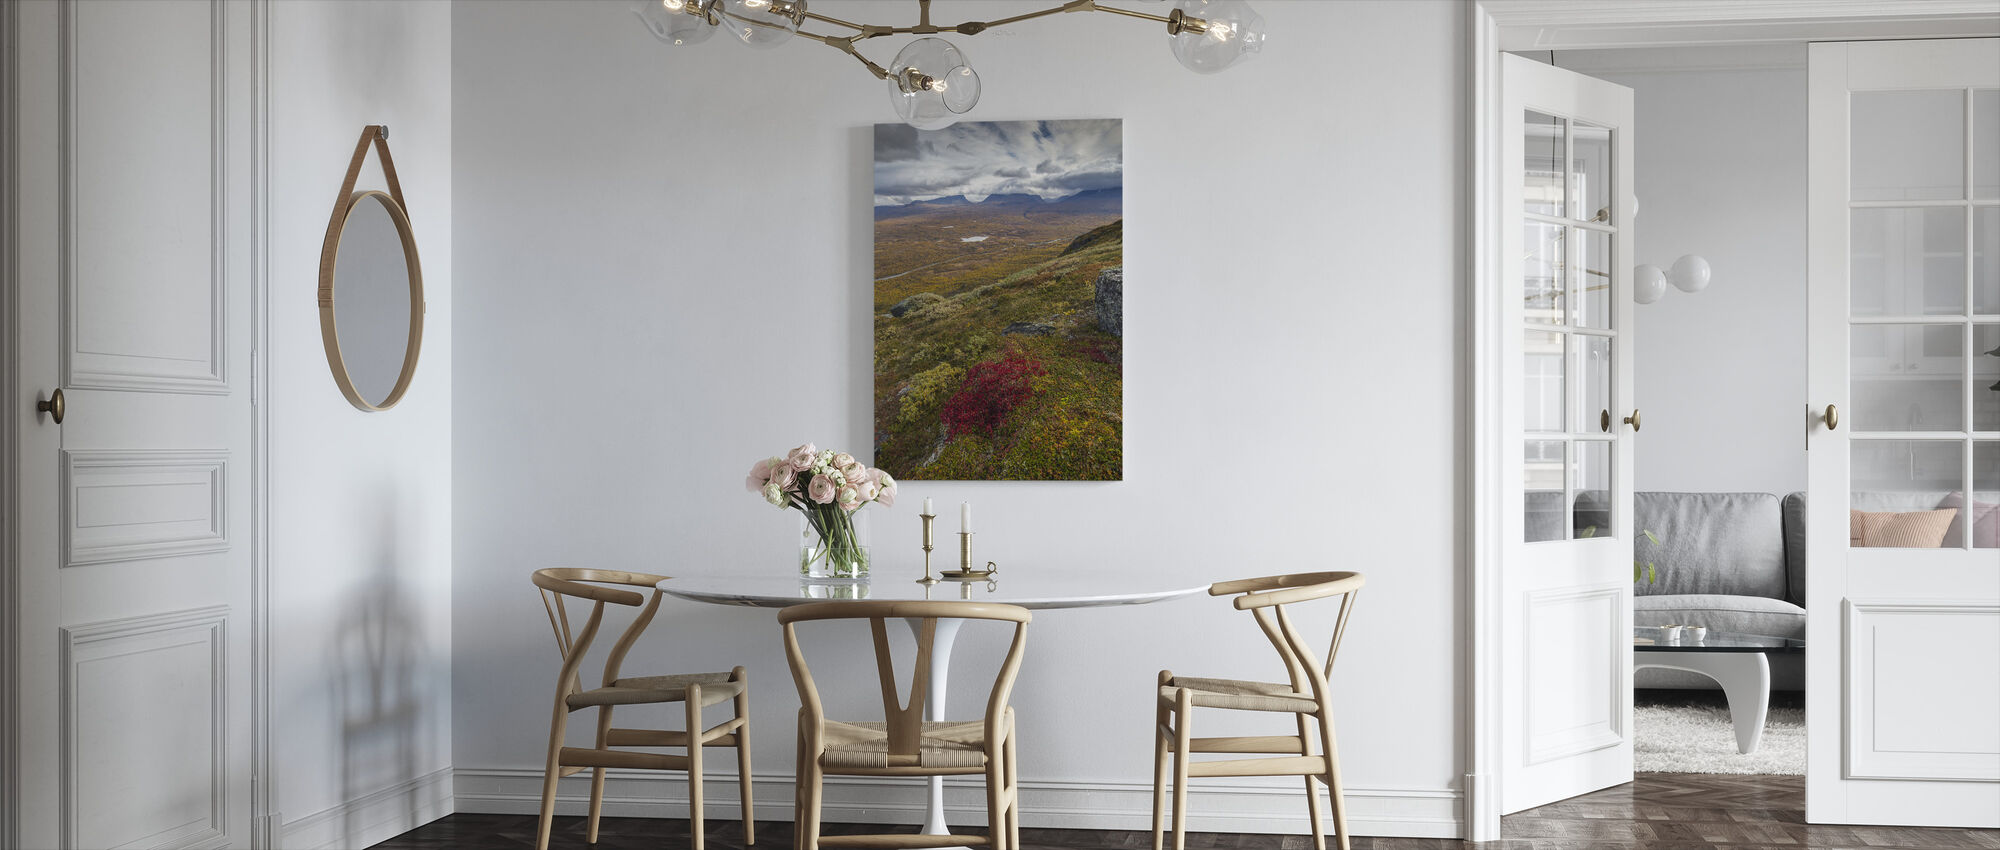 Nuolja Mountain, Abisko - Sweden - Canvas print - Kitchen